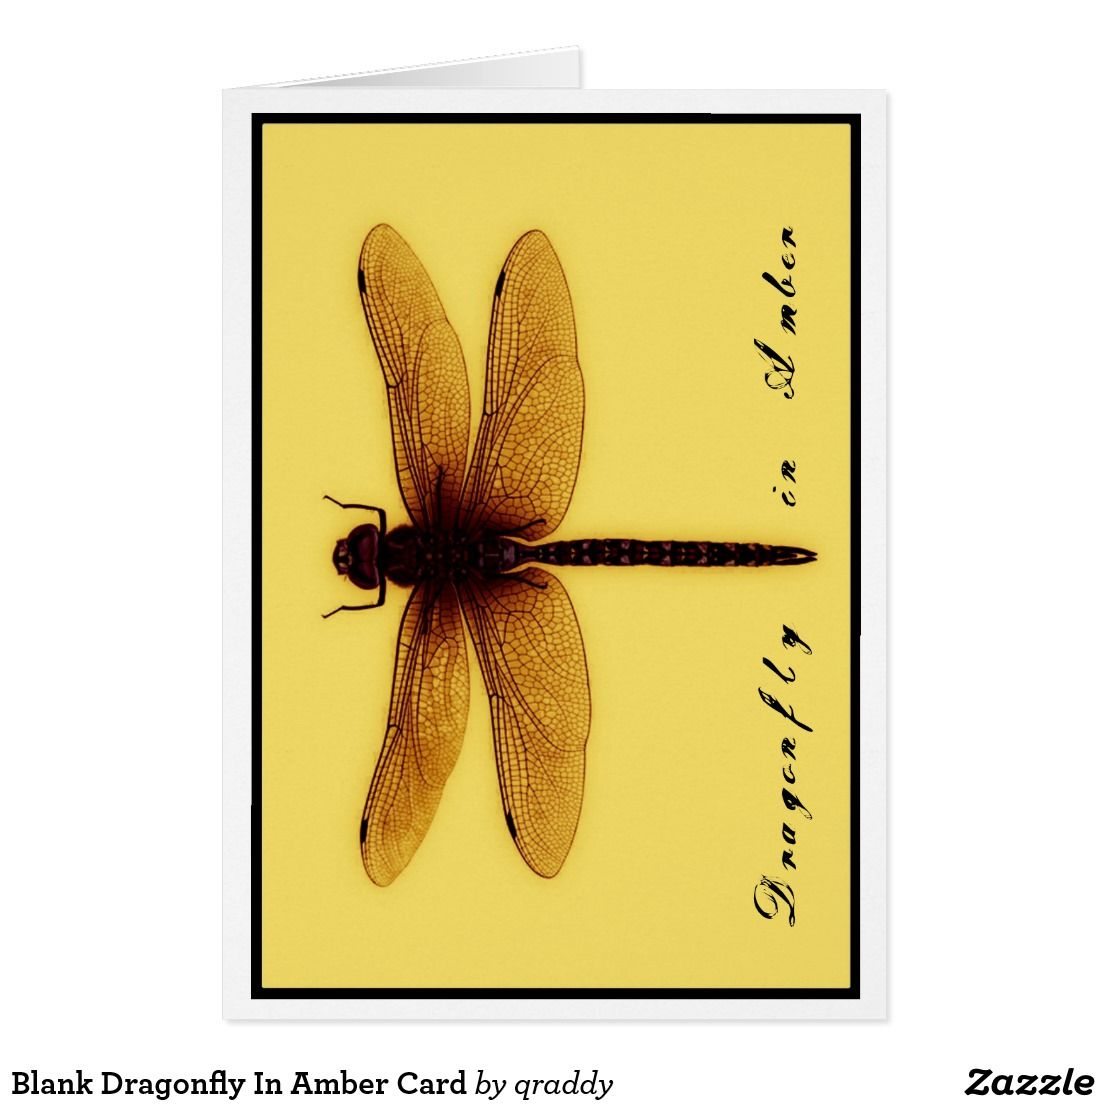 Blank Dragonfly Card Zazzle Com Dragonfly In Amber Cards